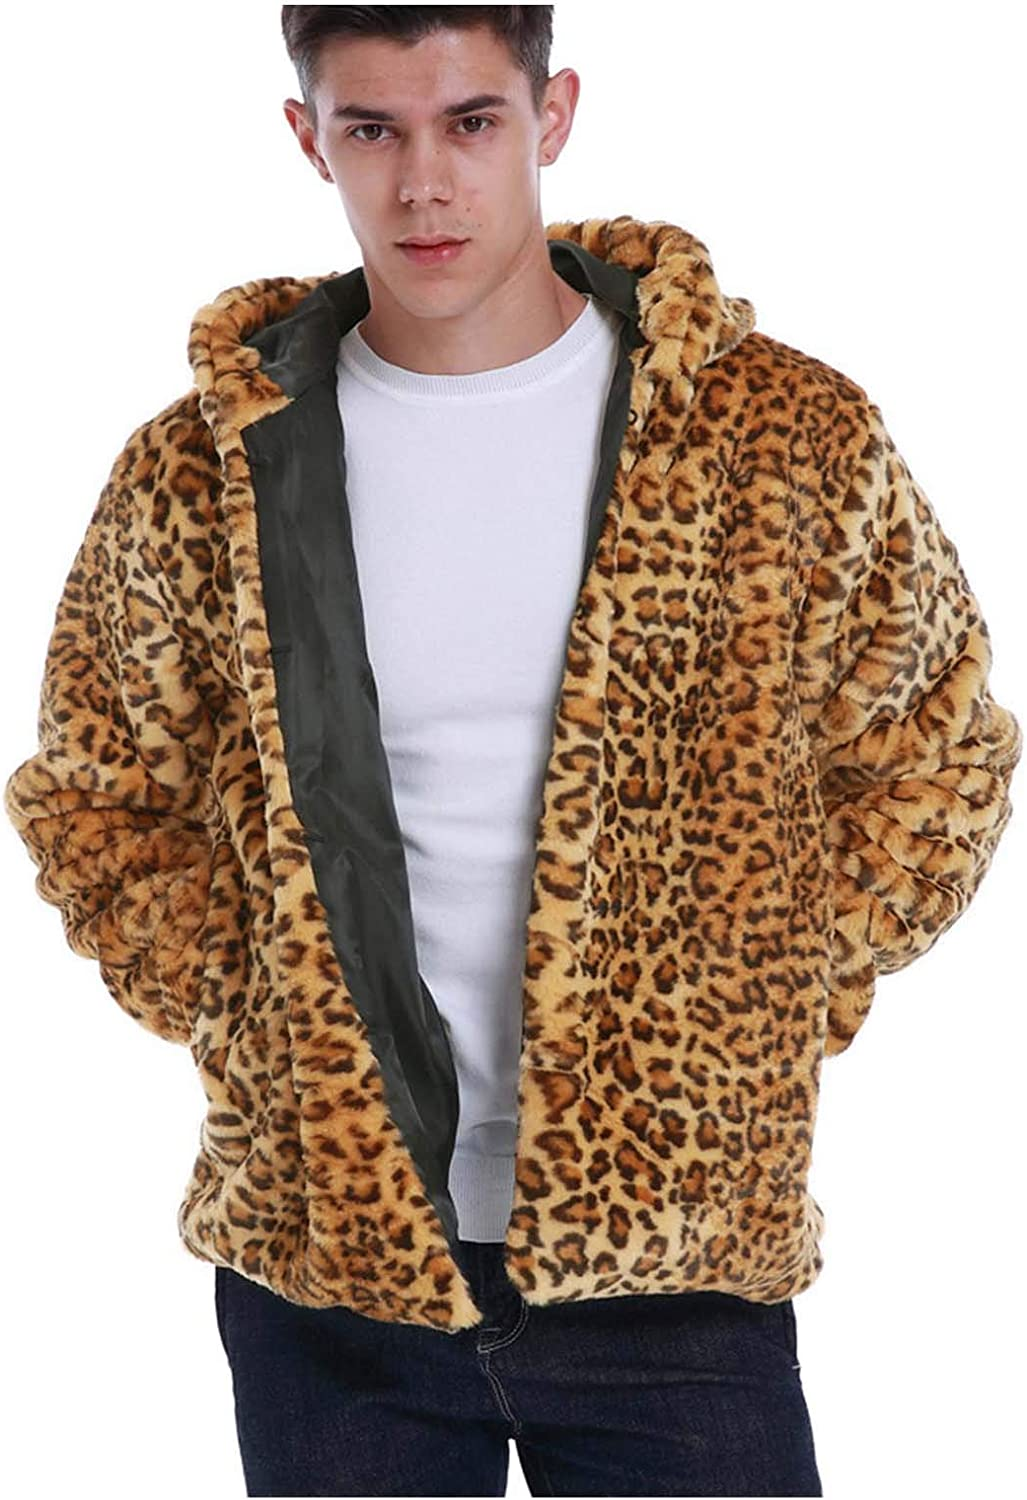 Beshion Mens Casual Sherpa Coat Winter Warm Imitation Fur Leopard Coat Thick Hooded Jacket Big and Tall Outwear Overcoat